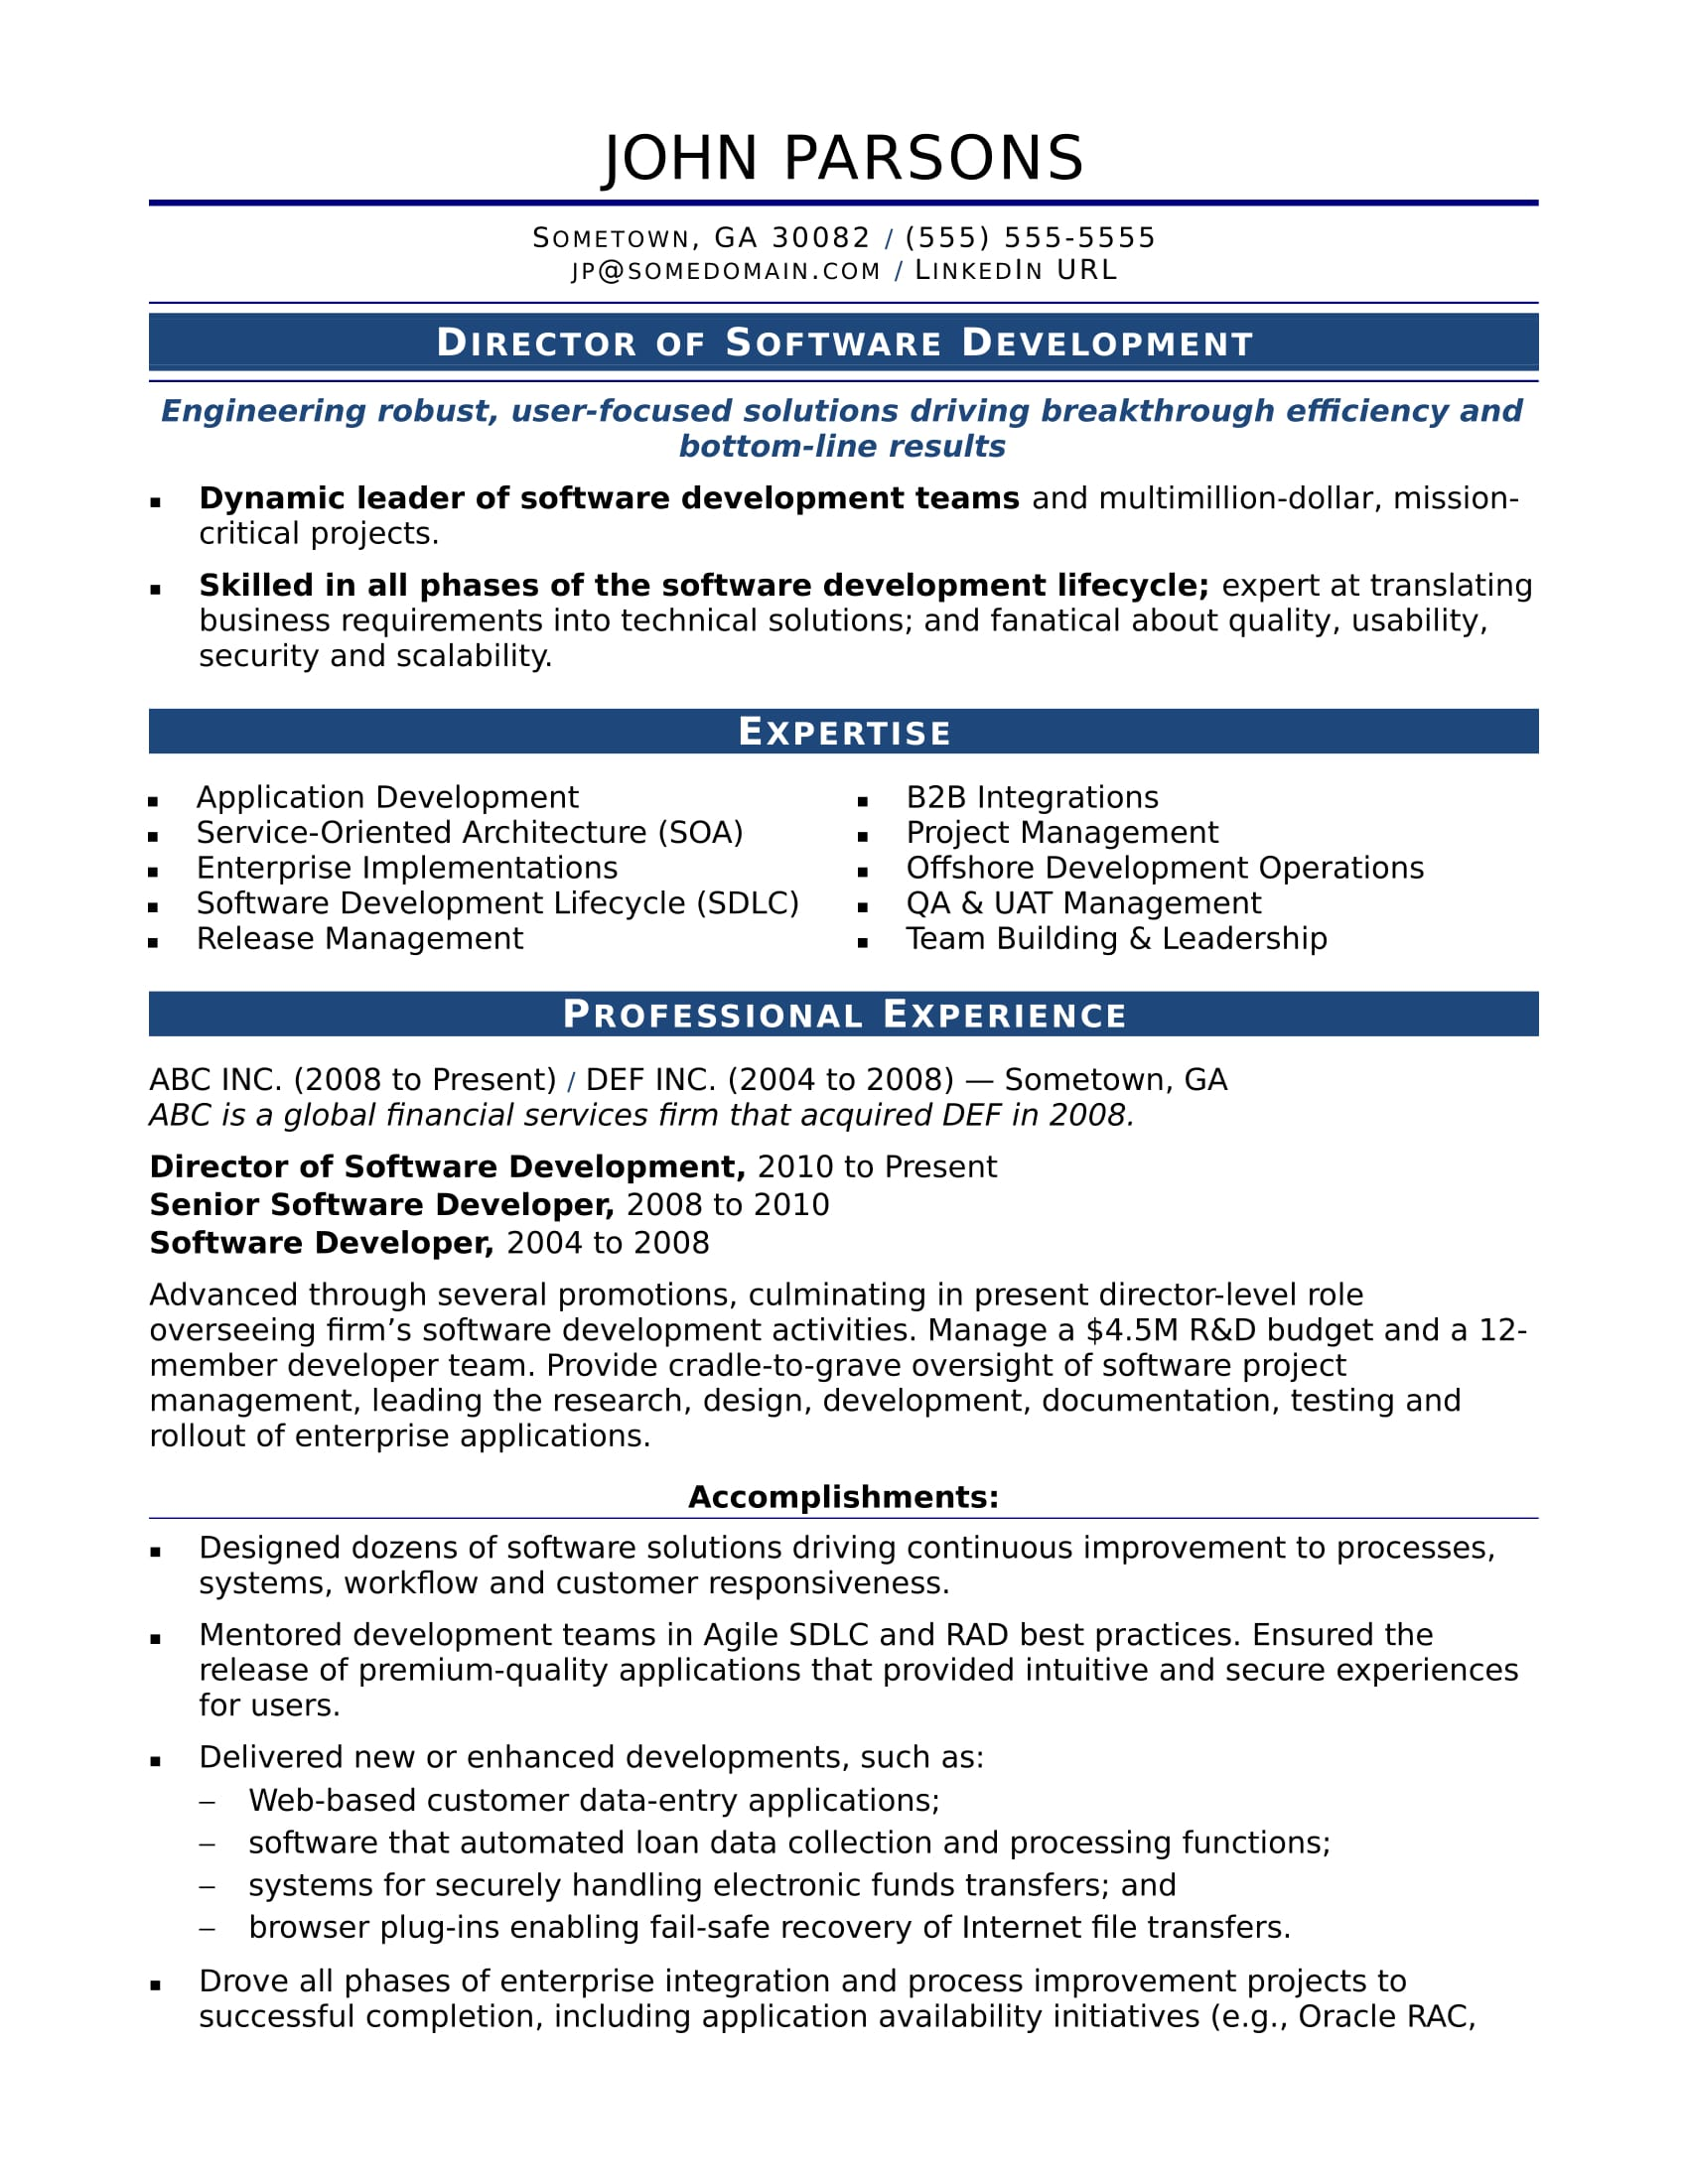 Sample Resume For An Experienced IT Developer  Resume Software Engineer